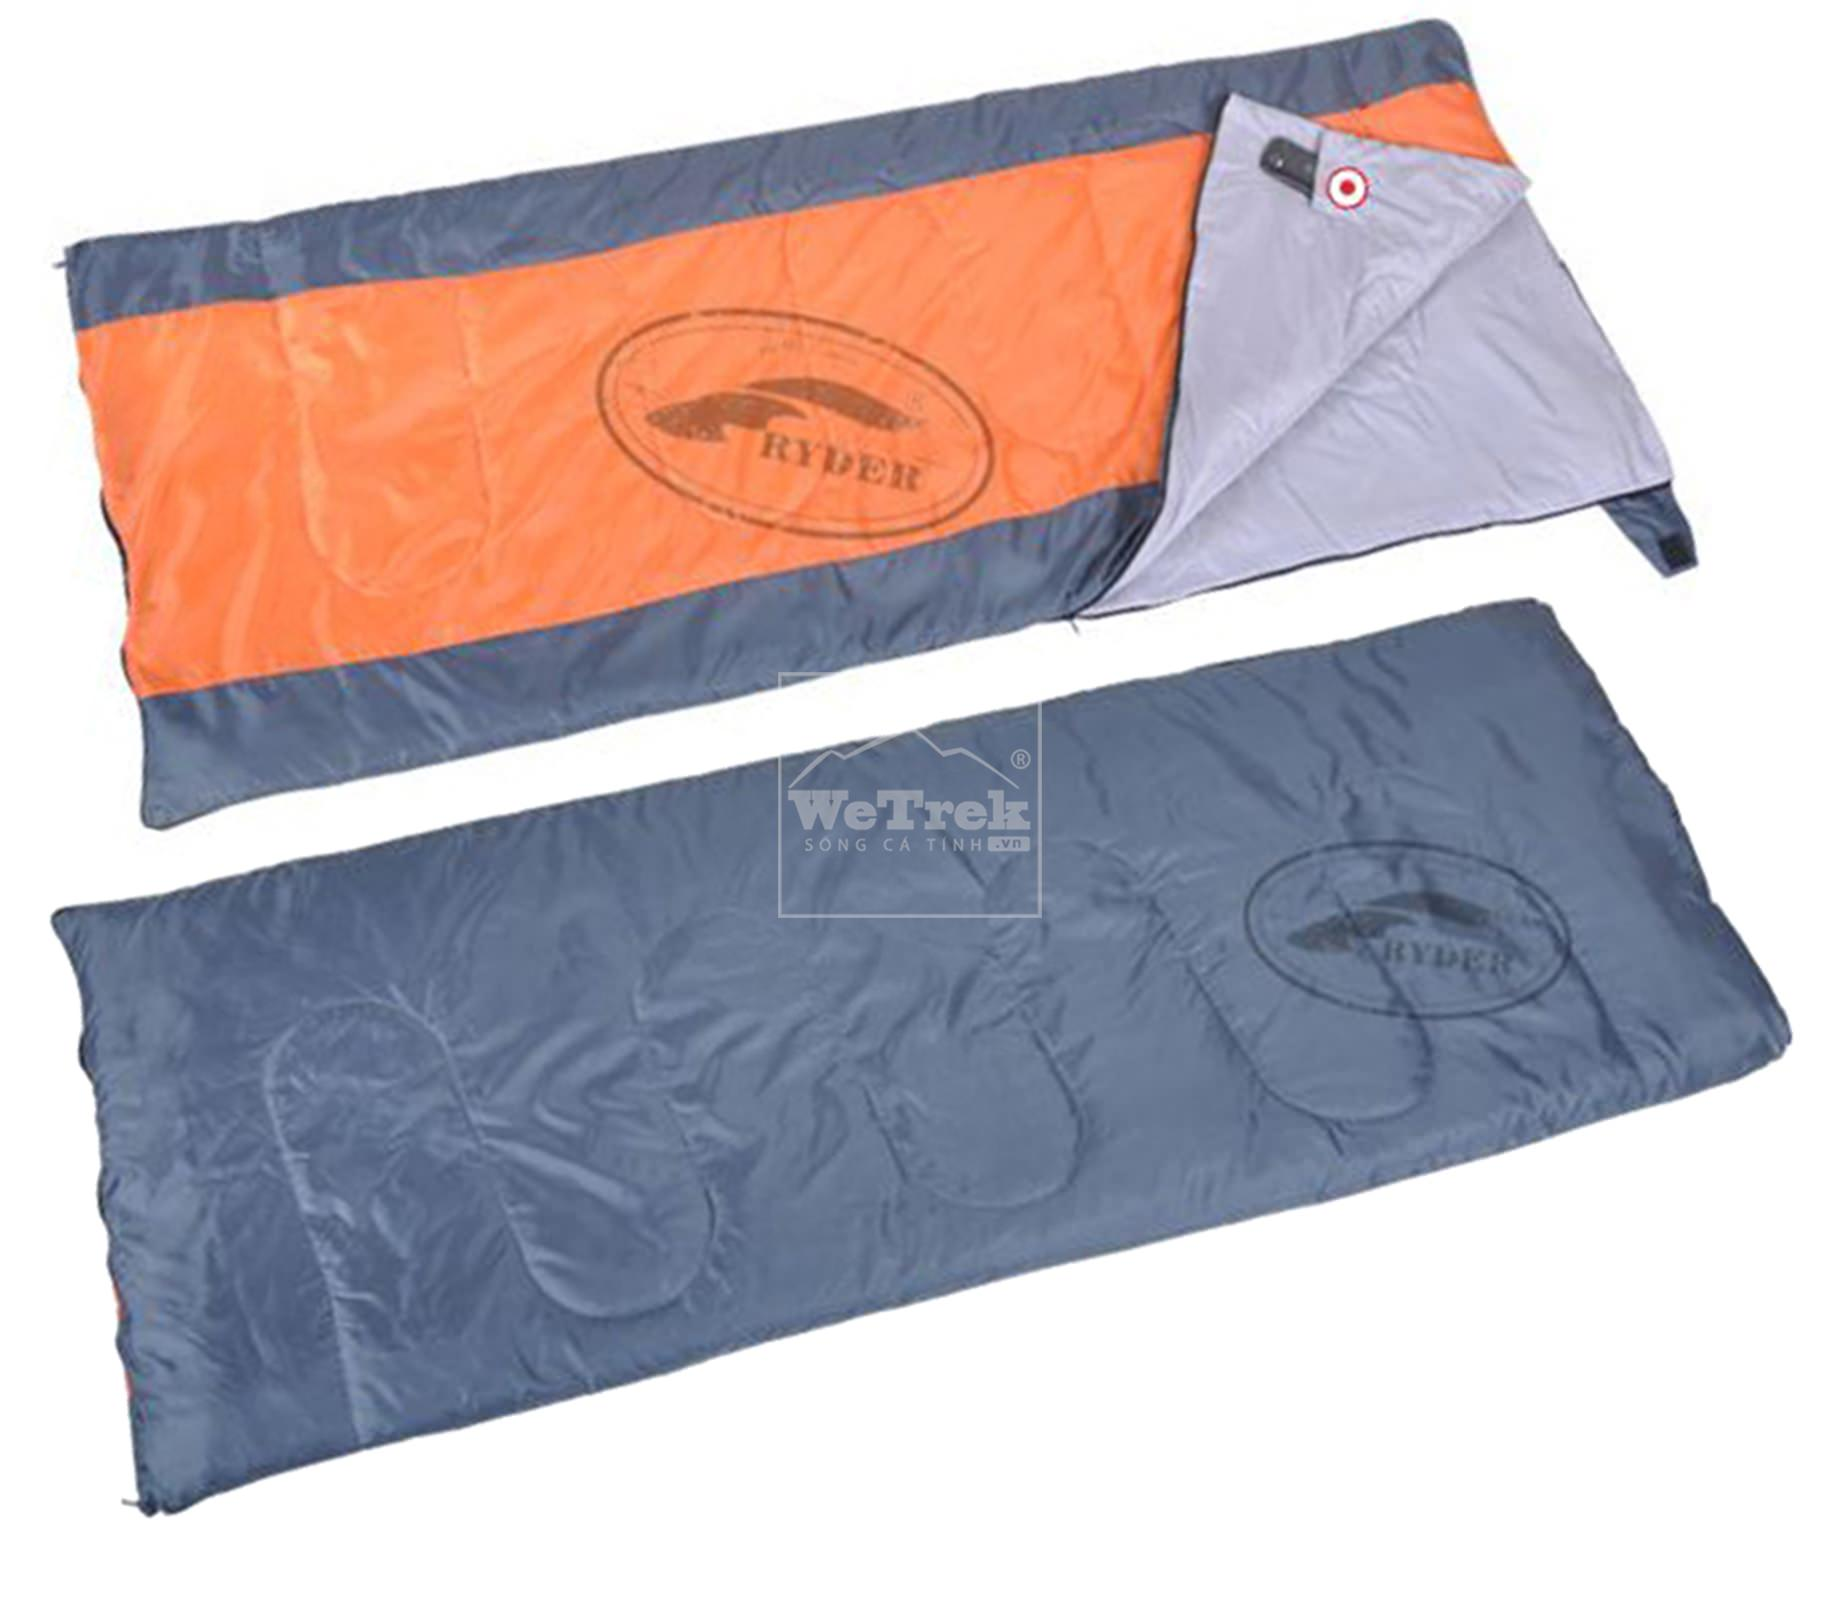 tui-ngu-ryder-envelope-sleeping-bag-d1001-orange-7482-wetrek.vn-1